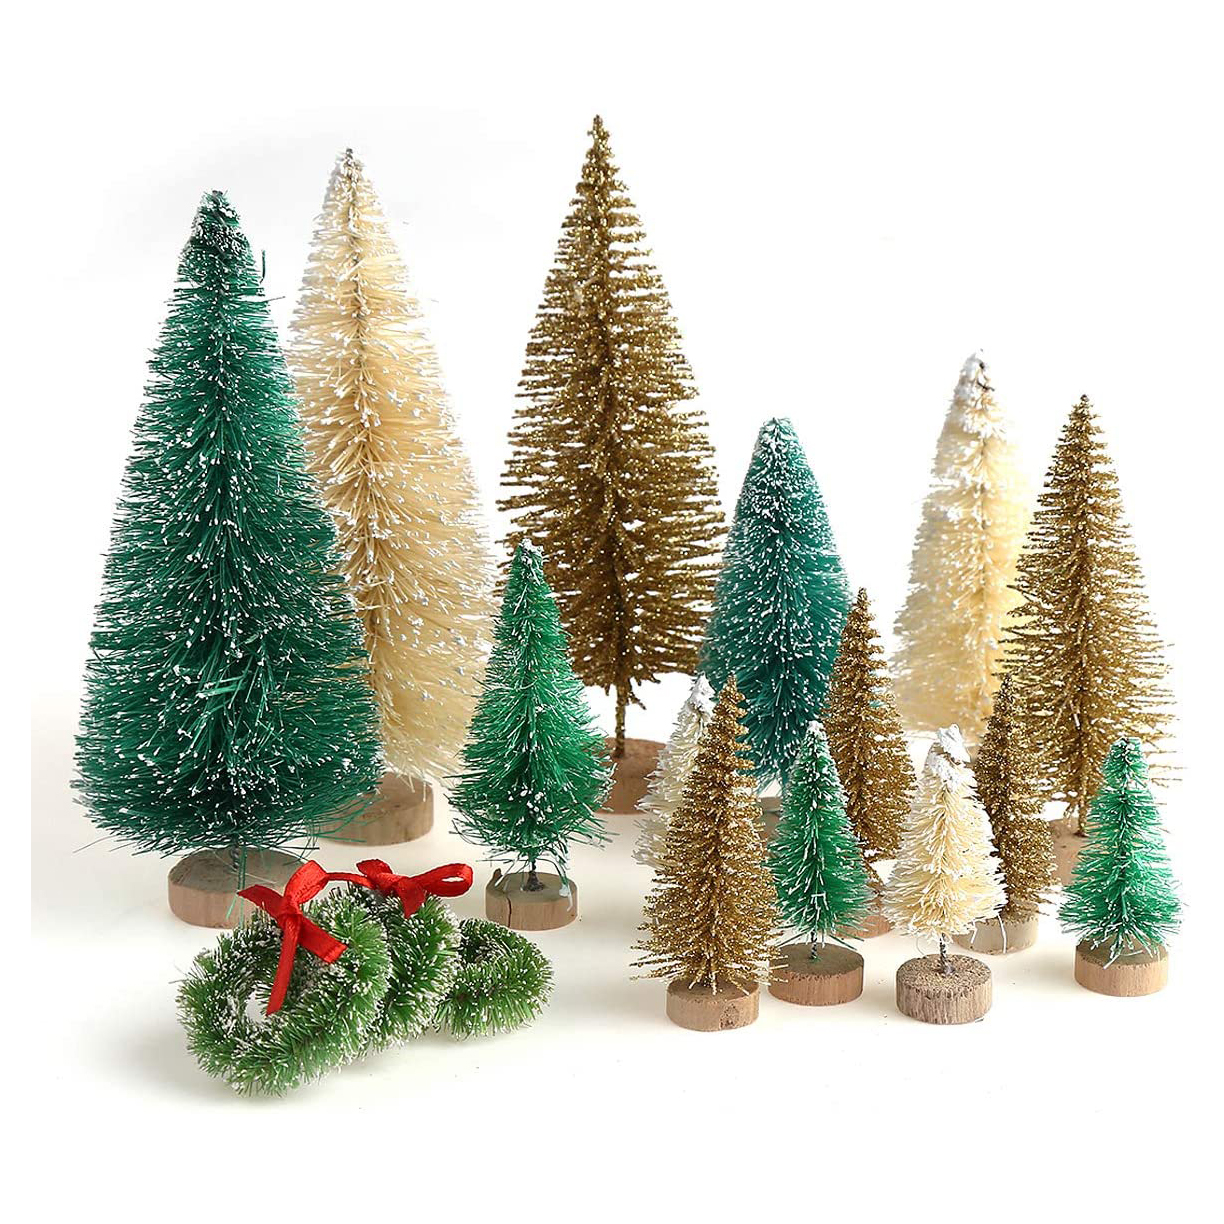 Mini Christmas Trees To Fill Your Home With Holiday Charm Southern Living